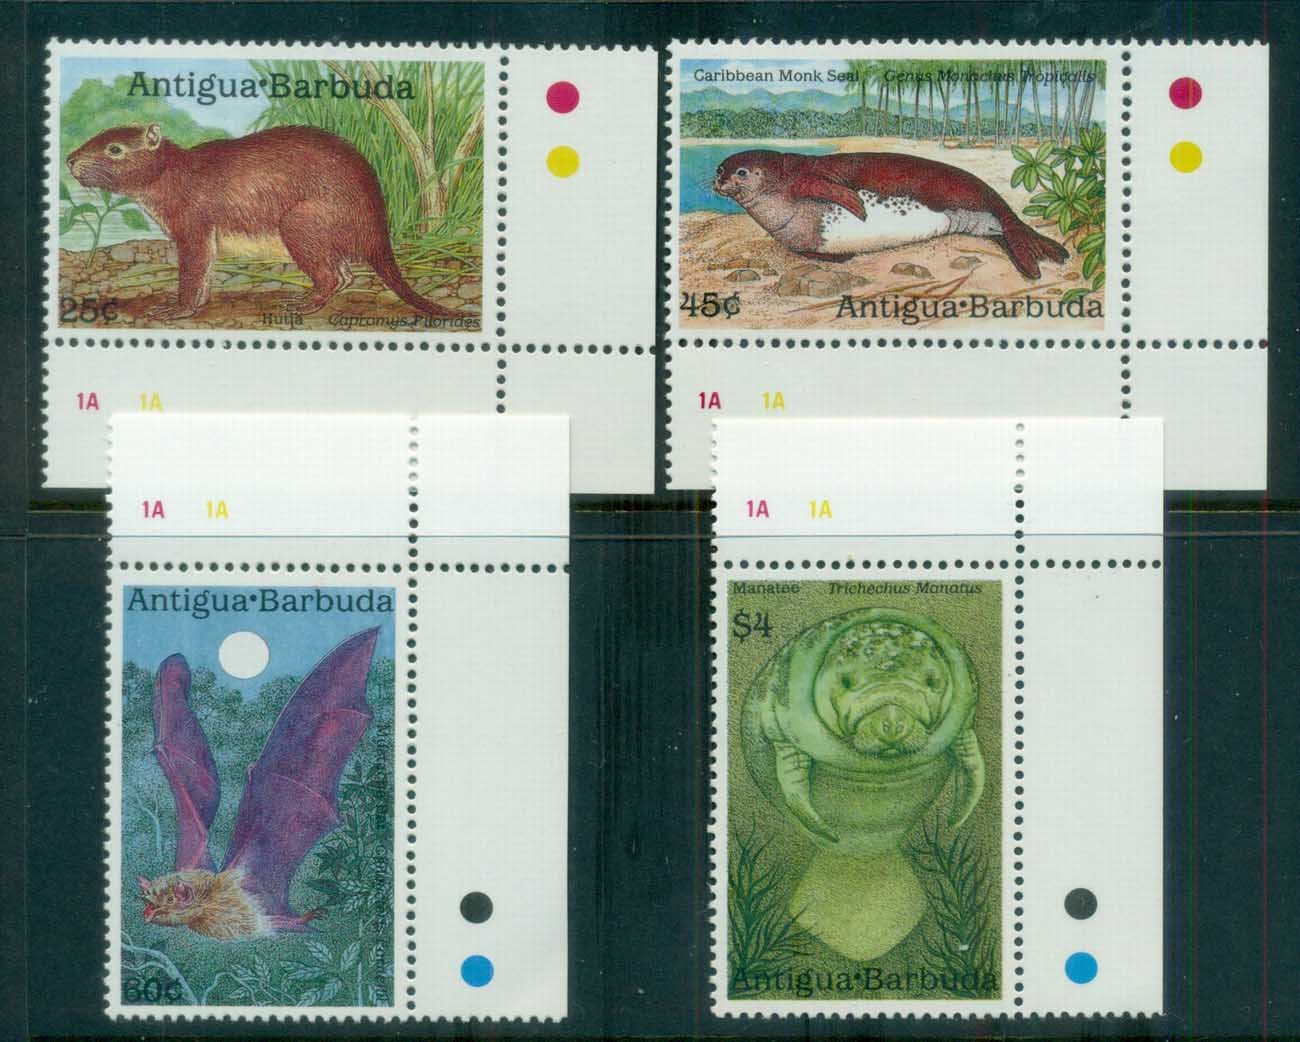 Antigua & Barbuda 1989 Wildlife MUH lot80976